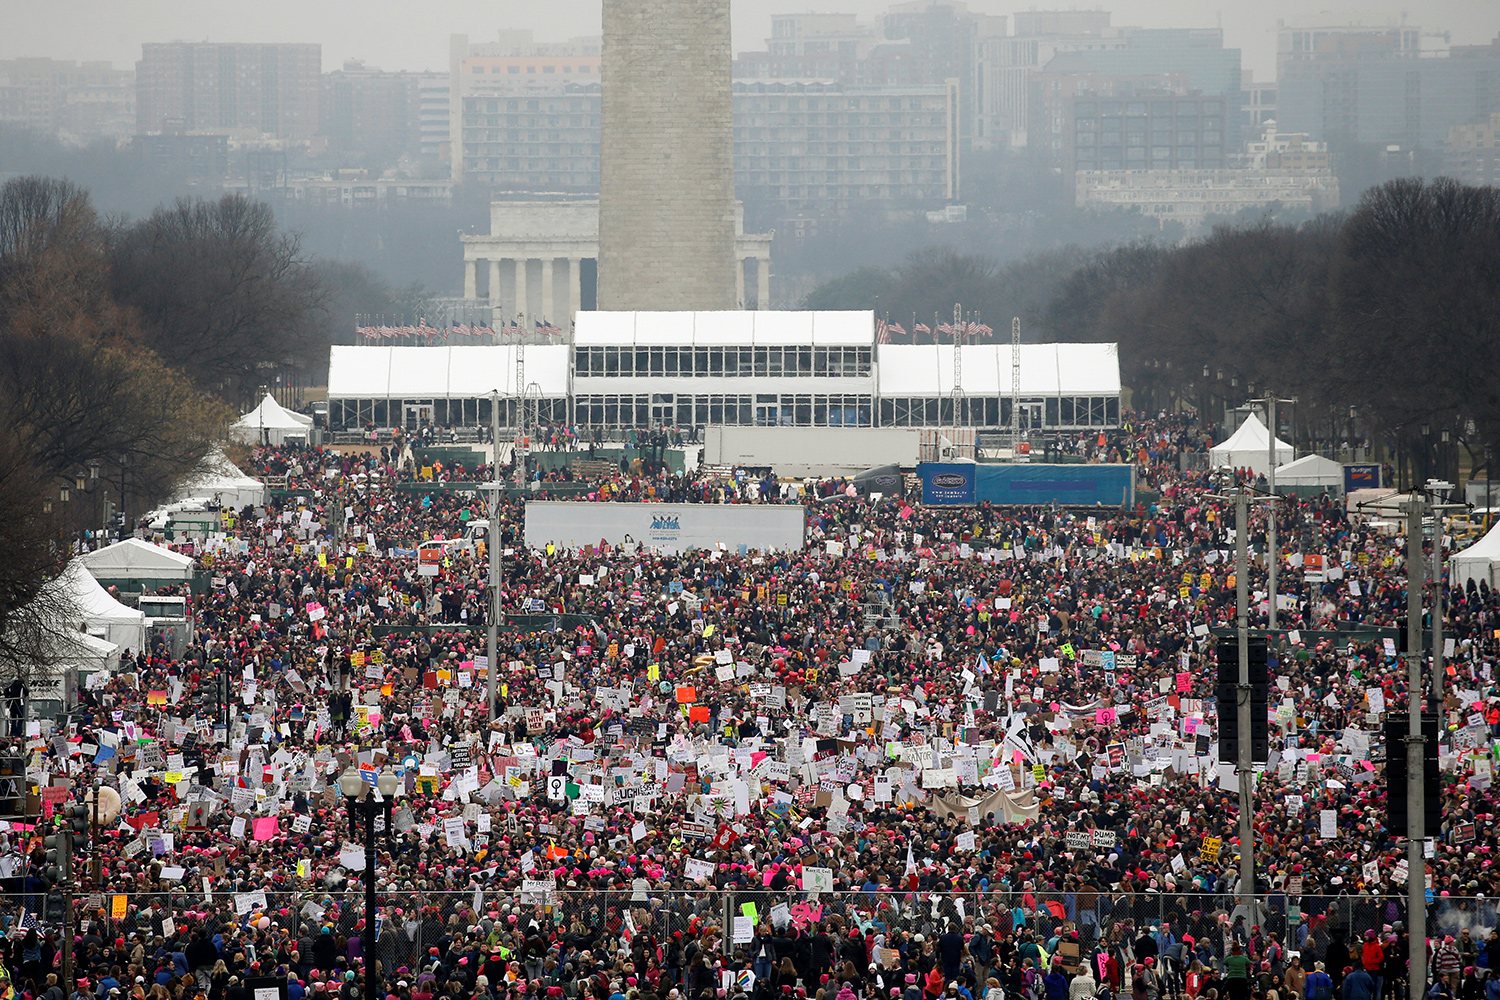 People pack the National Mall for the Women's March in Washington, U.S. January 21, 2017.  REUTERS/Jonathan Ernst - RTSWPL8